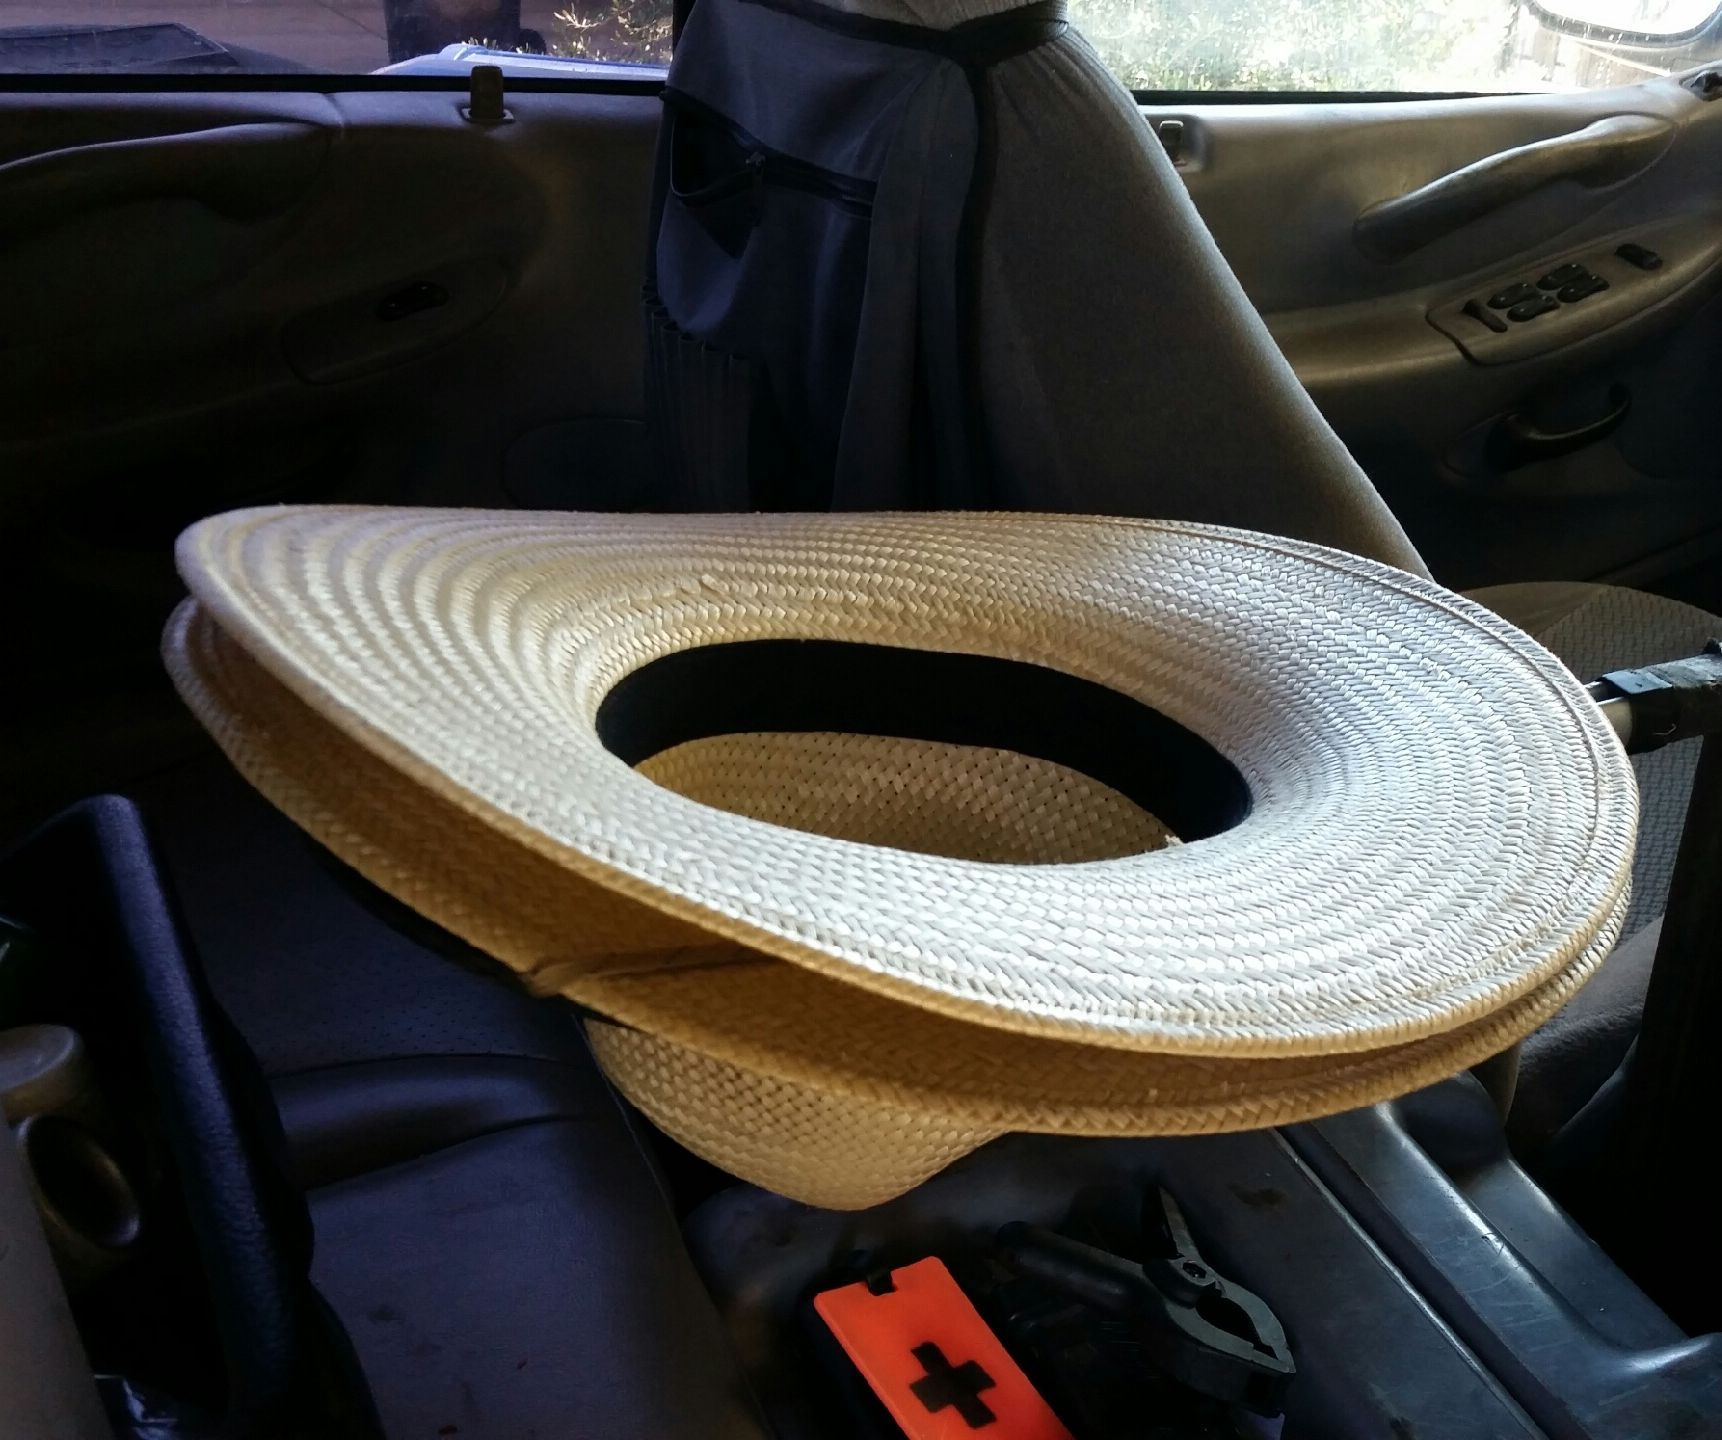 cowboy hat holder for truck using a